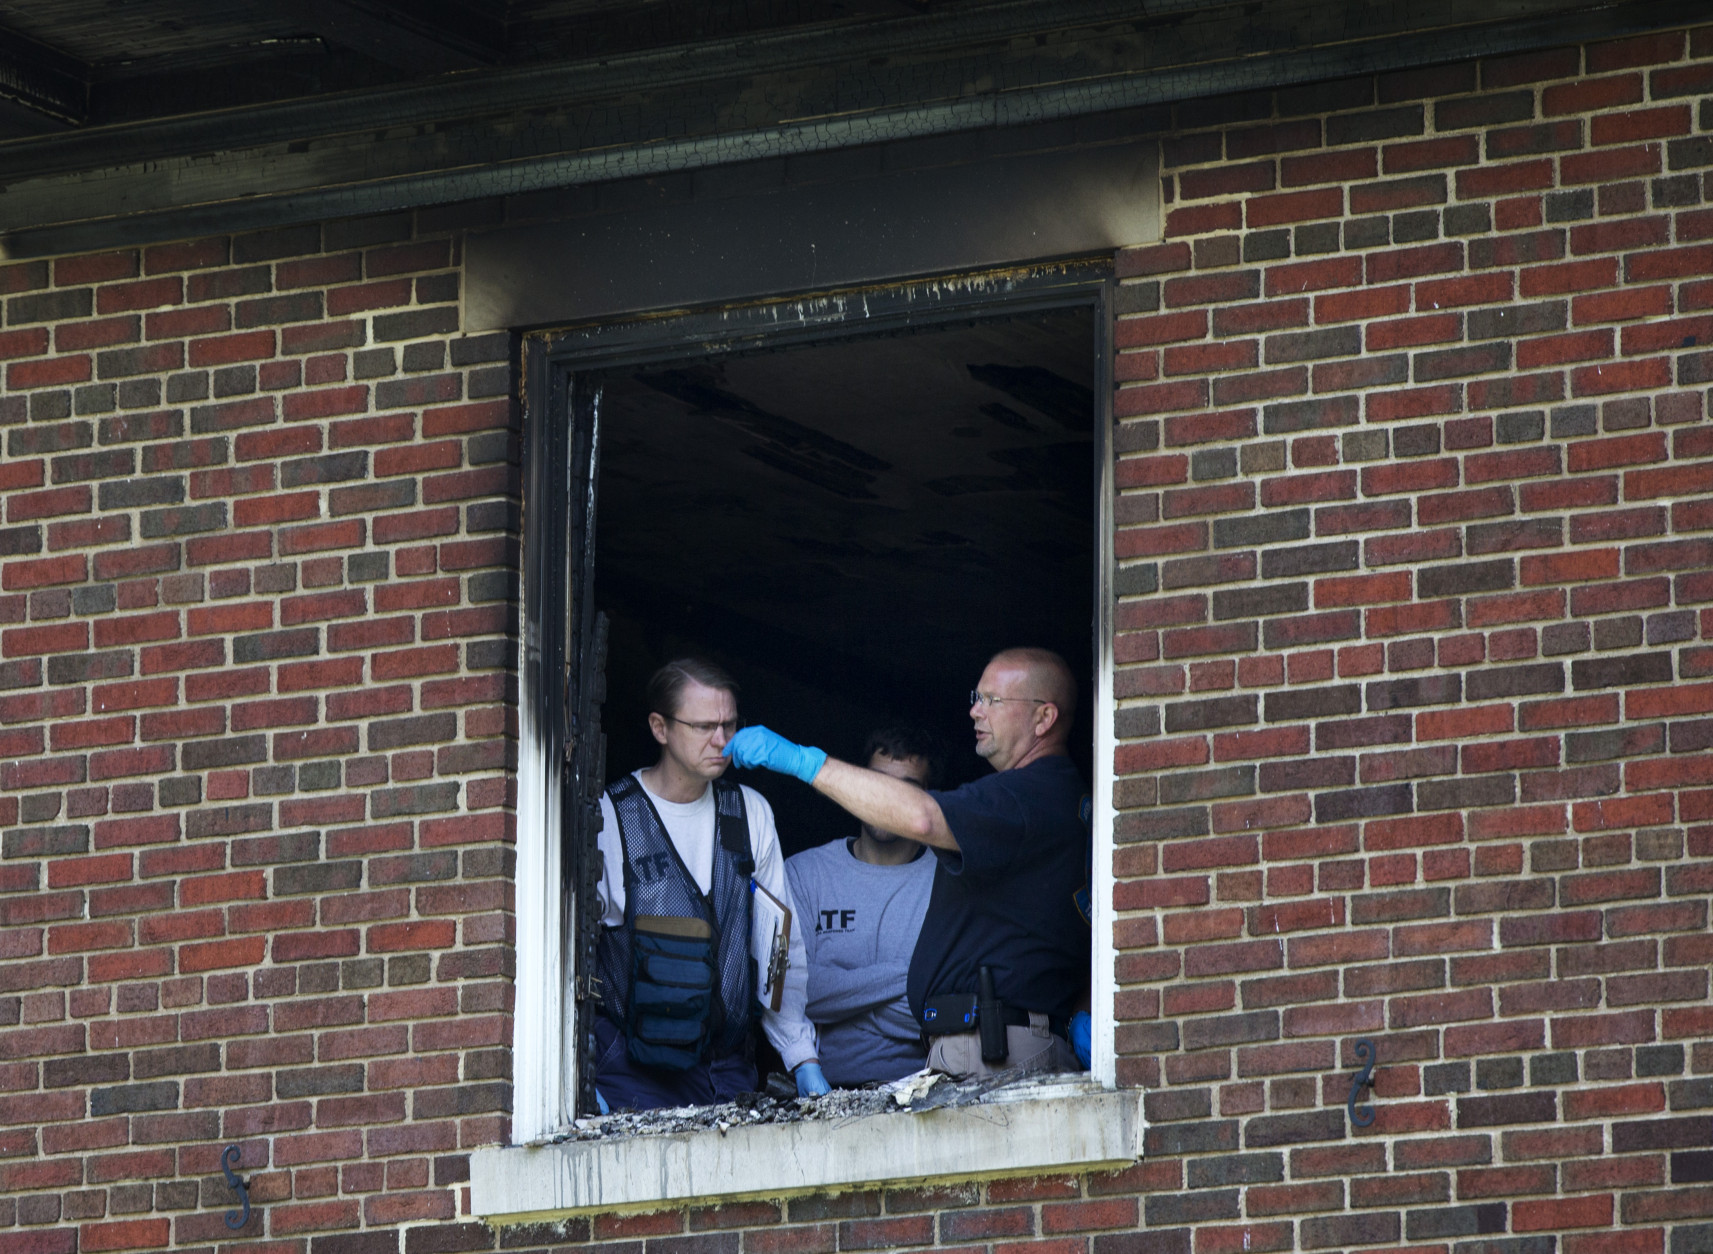 Investigators inspect the fire-damaged multimillion-dollar home in northwest Washington home, Wednesday, May 20, 2015, where four people were found dead May 14. Police Chief Cathy Lanier earlier identified two of the victims found dead as 46-year-old Savvas Savopoulos and his 47-year-old wife, Amy Savopoulos. Police believe the other two victims are the couple's 10-year-old son and a housekeeper. Police say the deaths are being investigated as a homicide.   (AP Photo/Manuel Balce Ceneta)